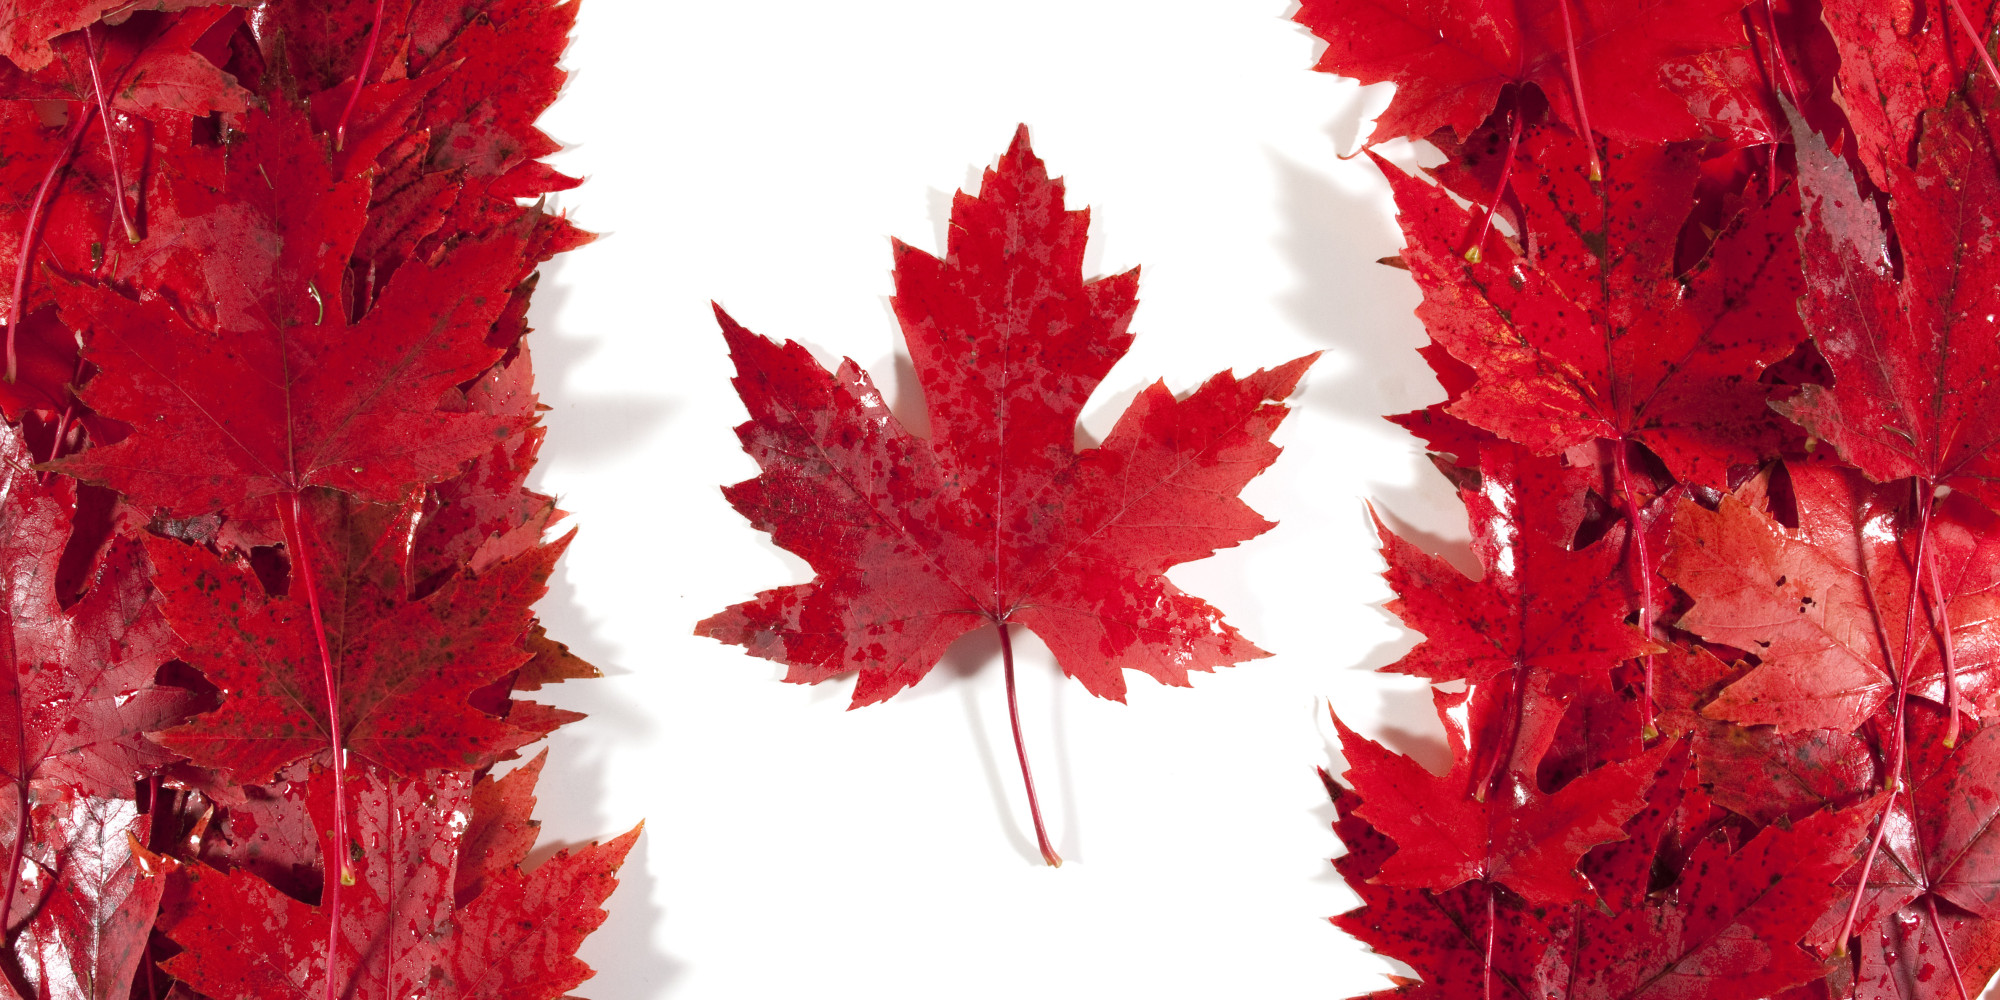 Their flag is actually made of leaves. Fact.